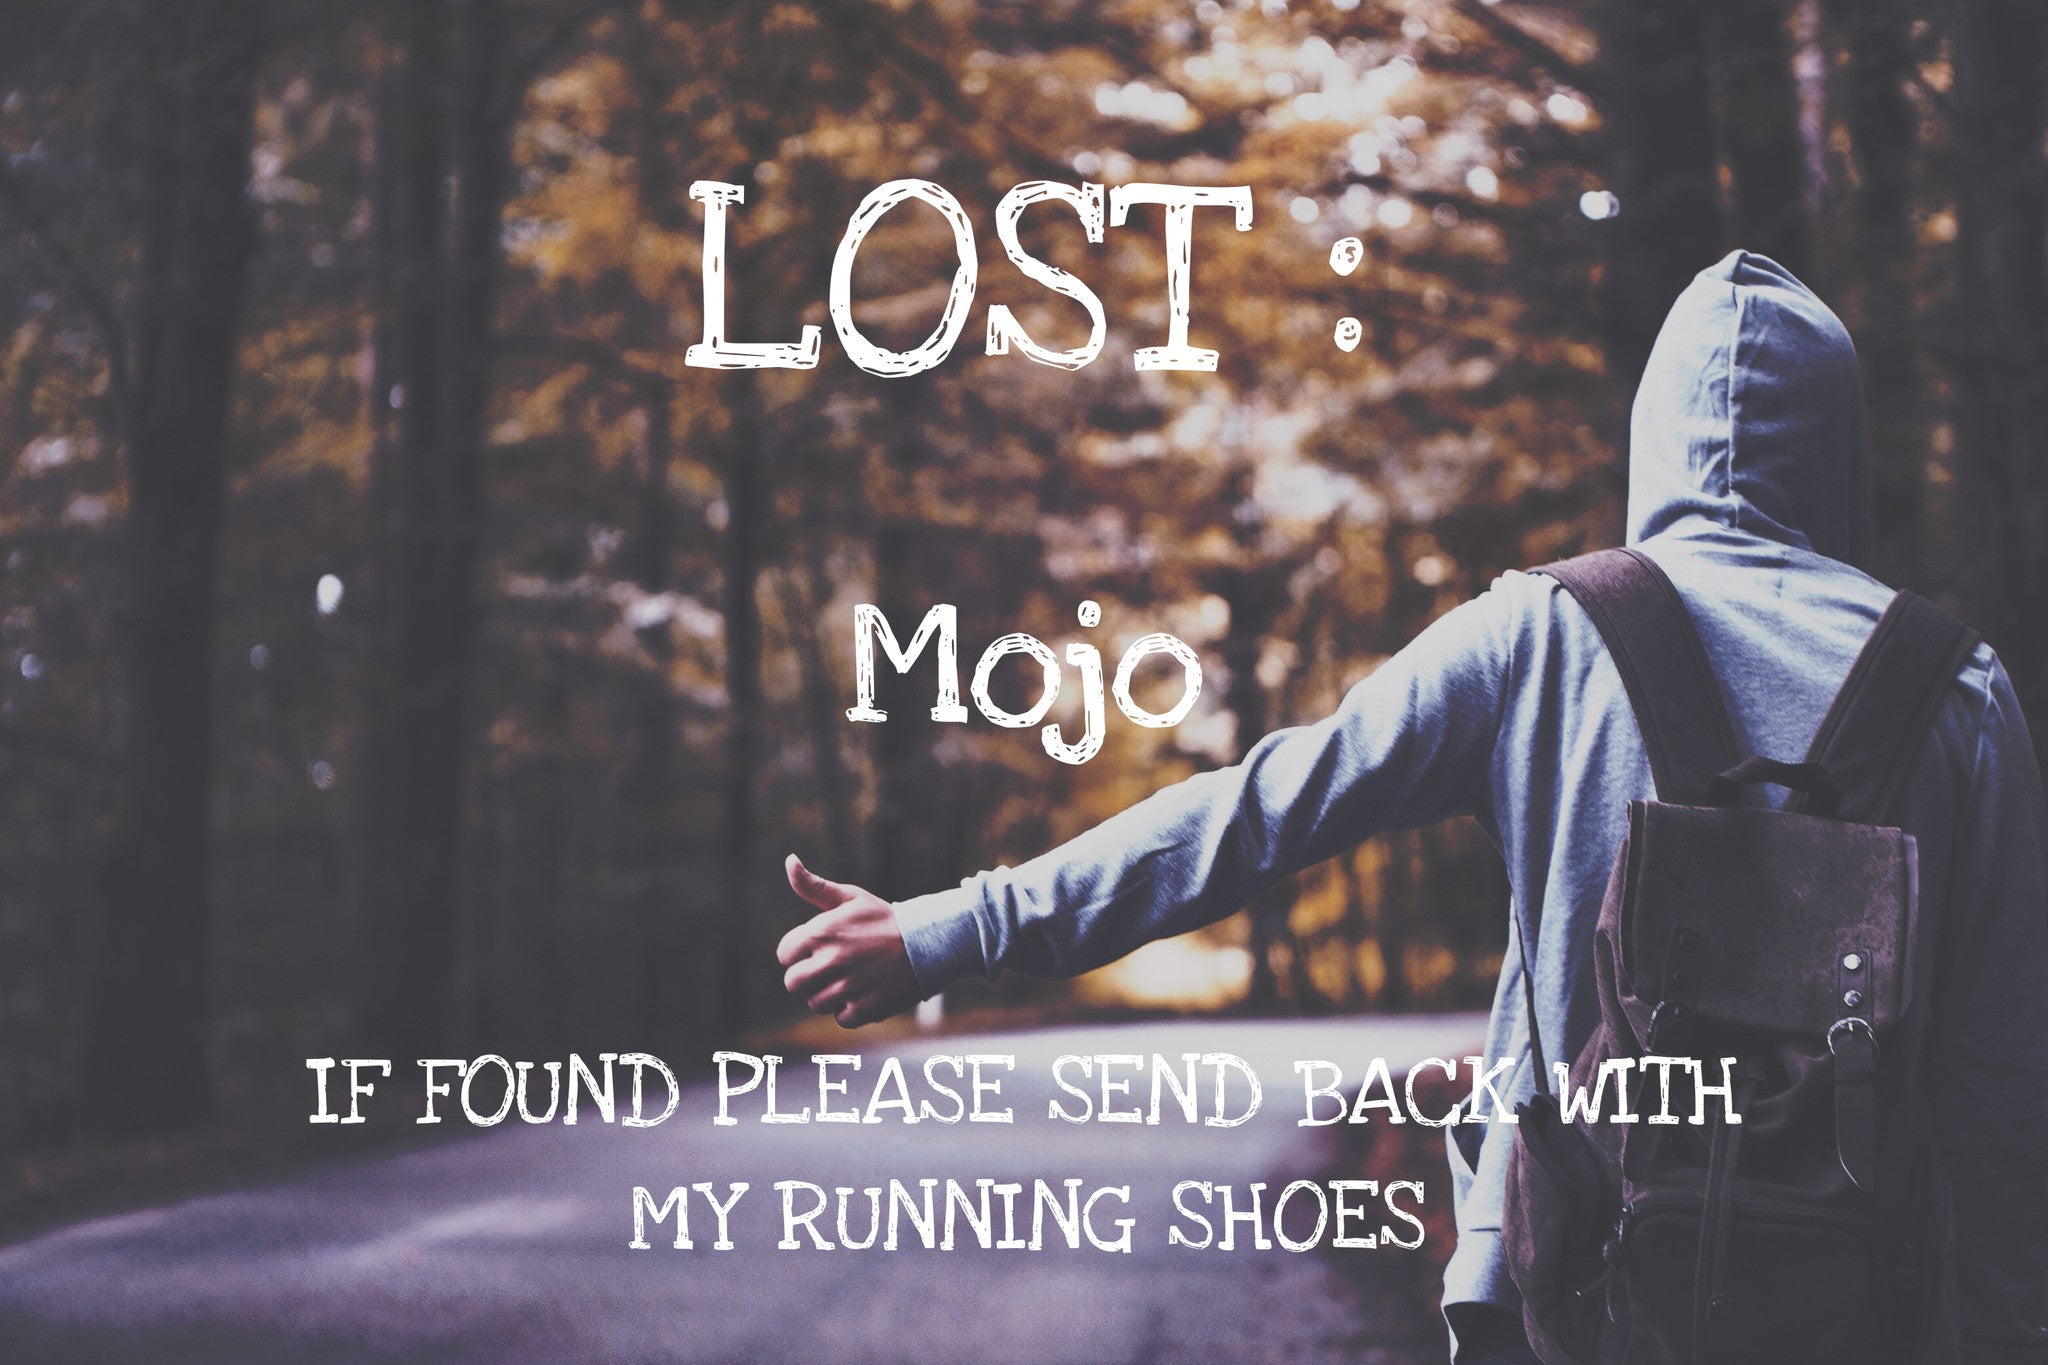 """Mojo to Nojo"" #ChasingFitnessStory by The Barge Arse Runner"